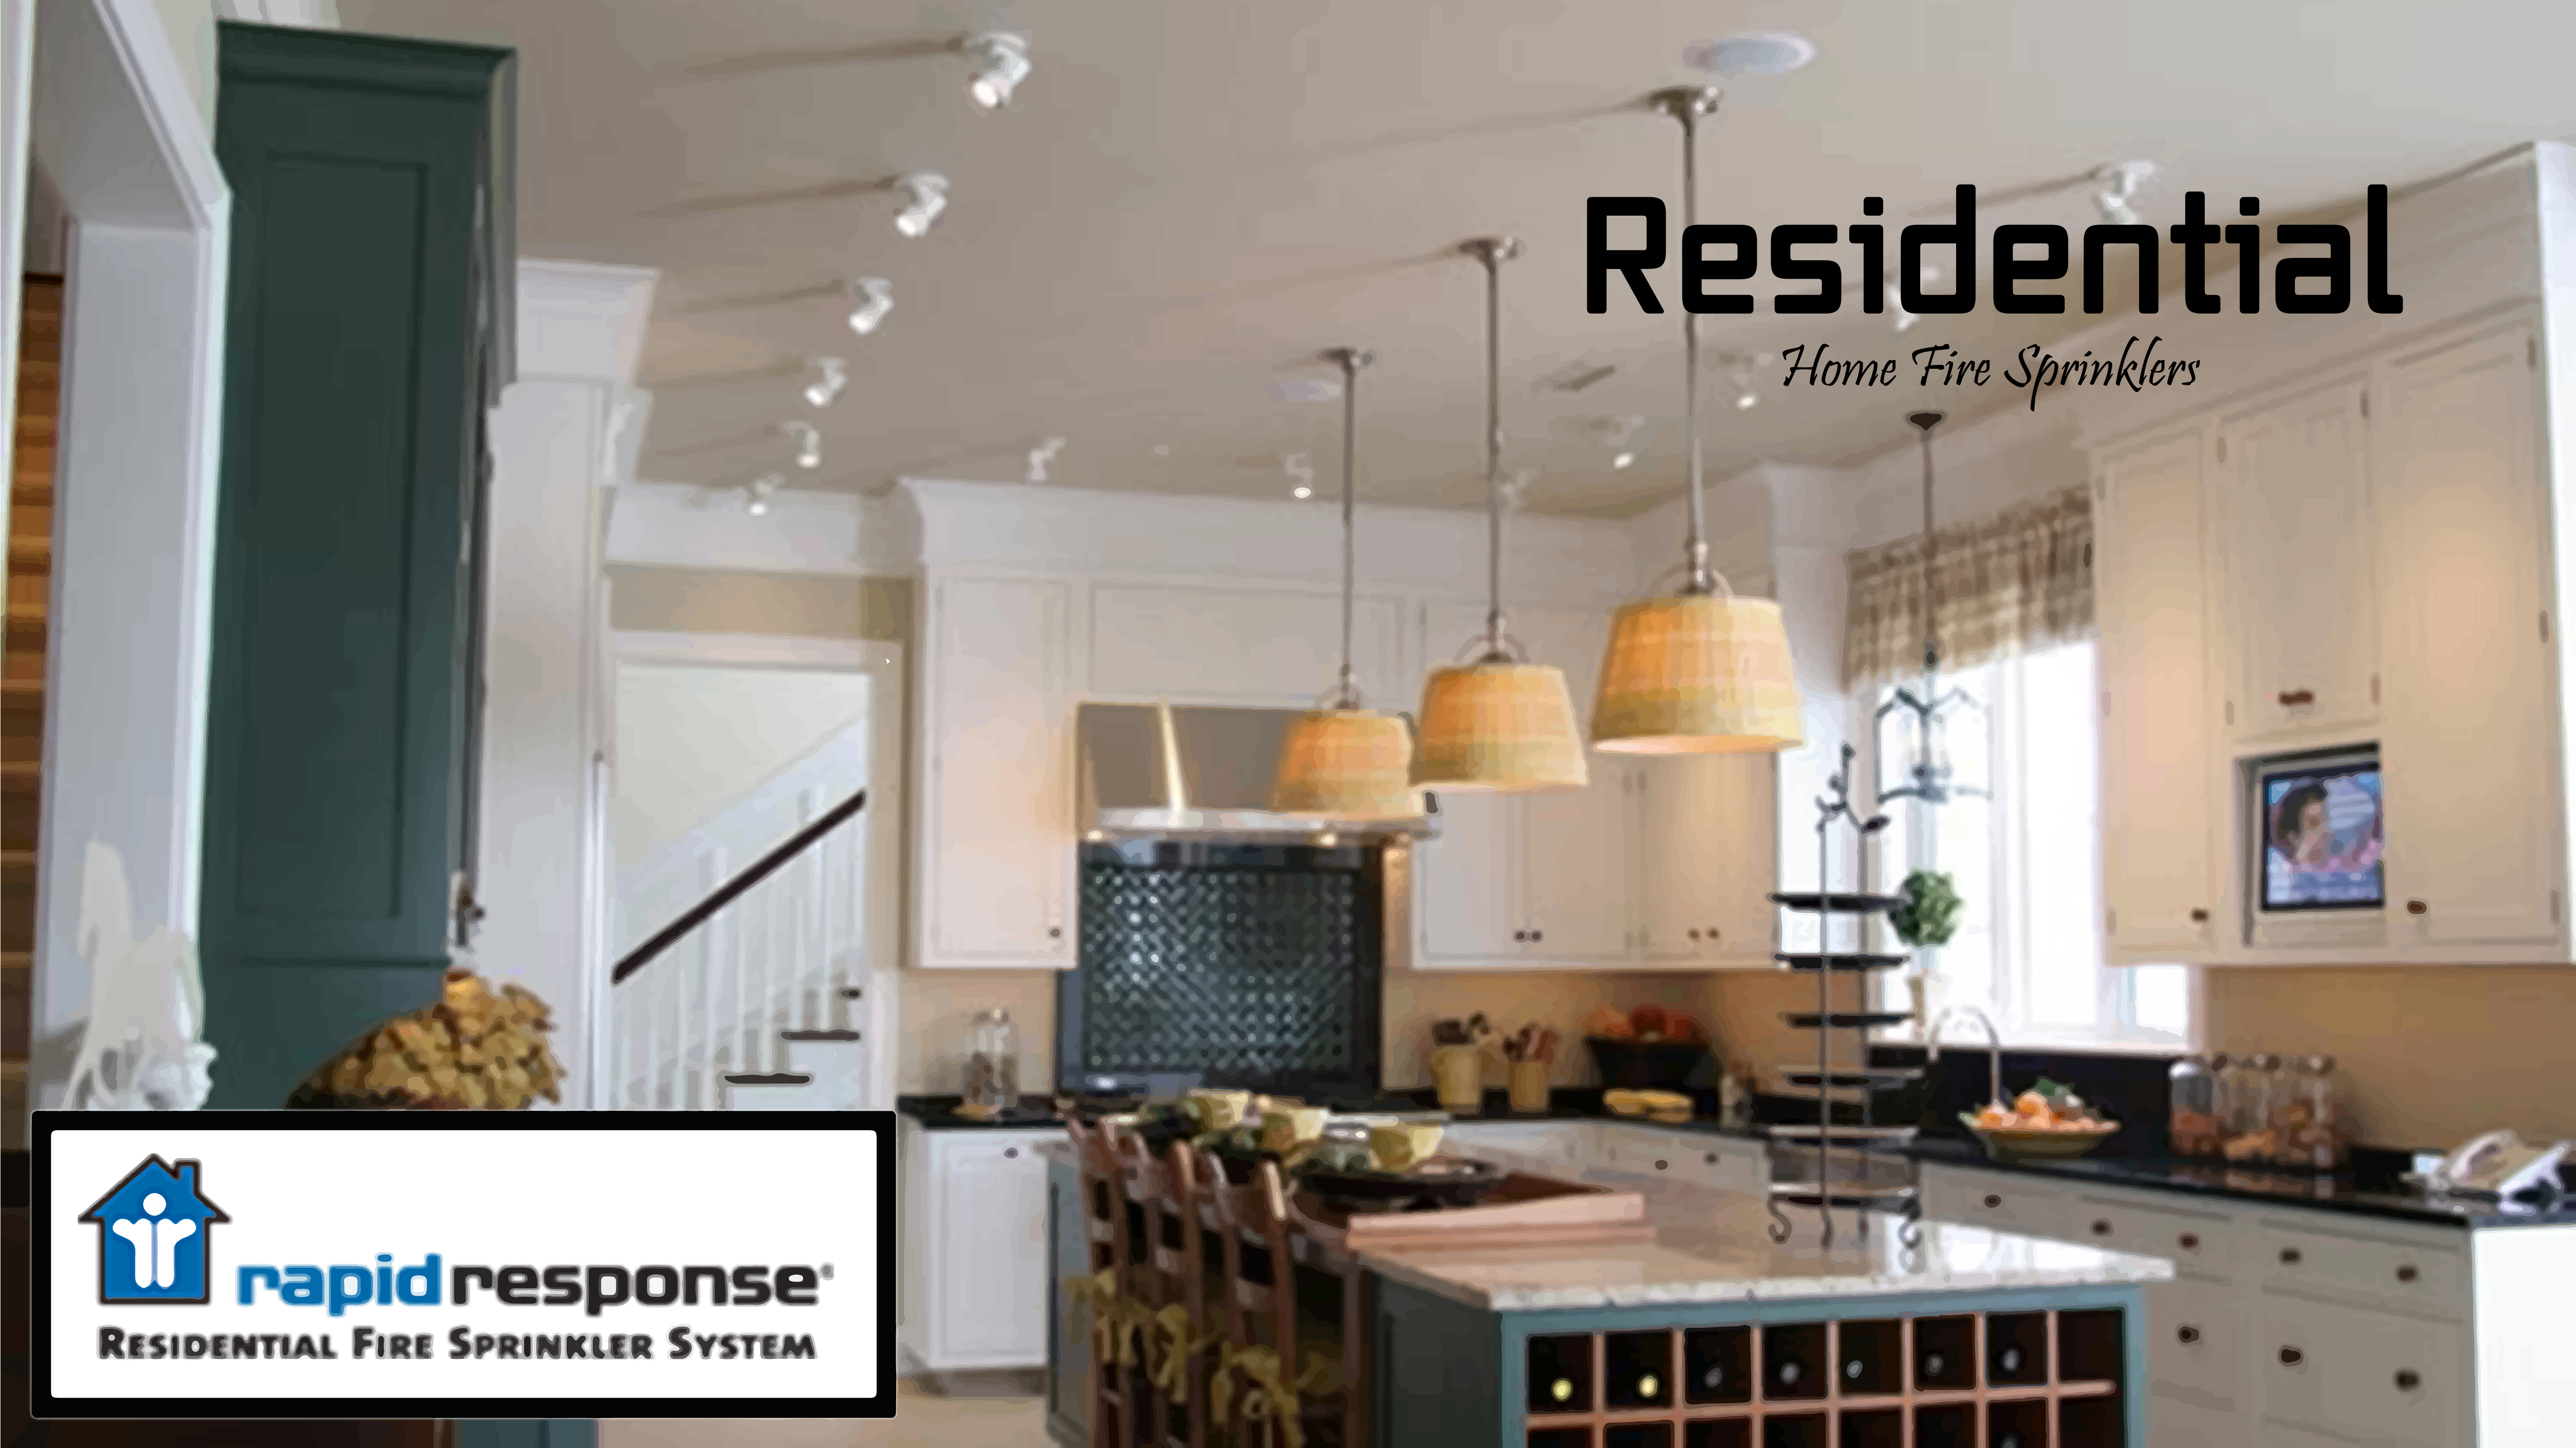 Residential Fire Sprinkler Services in San Diego, California